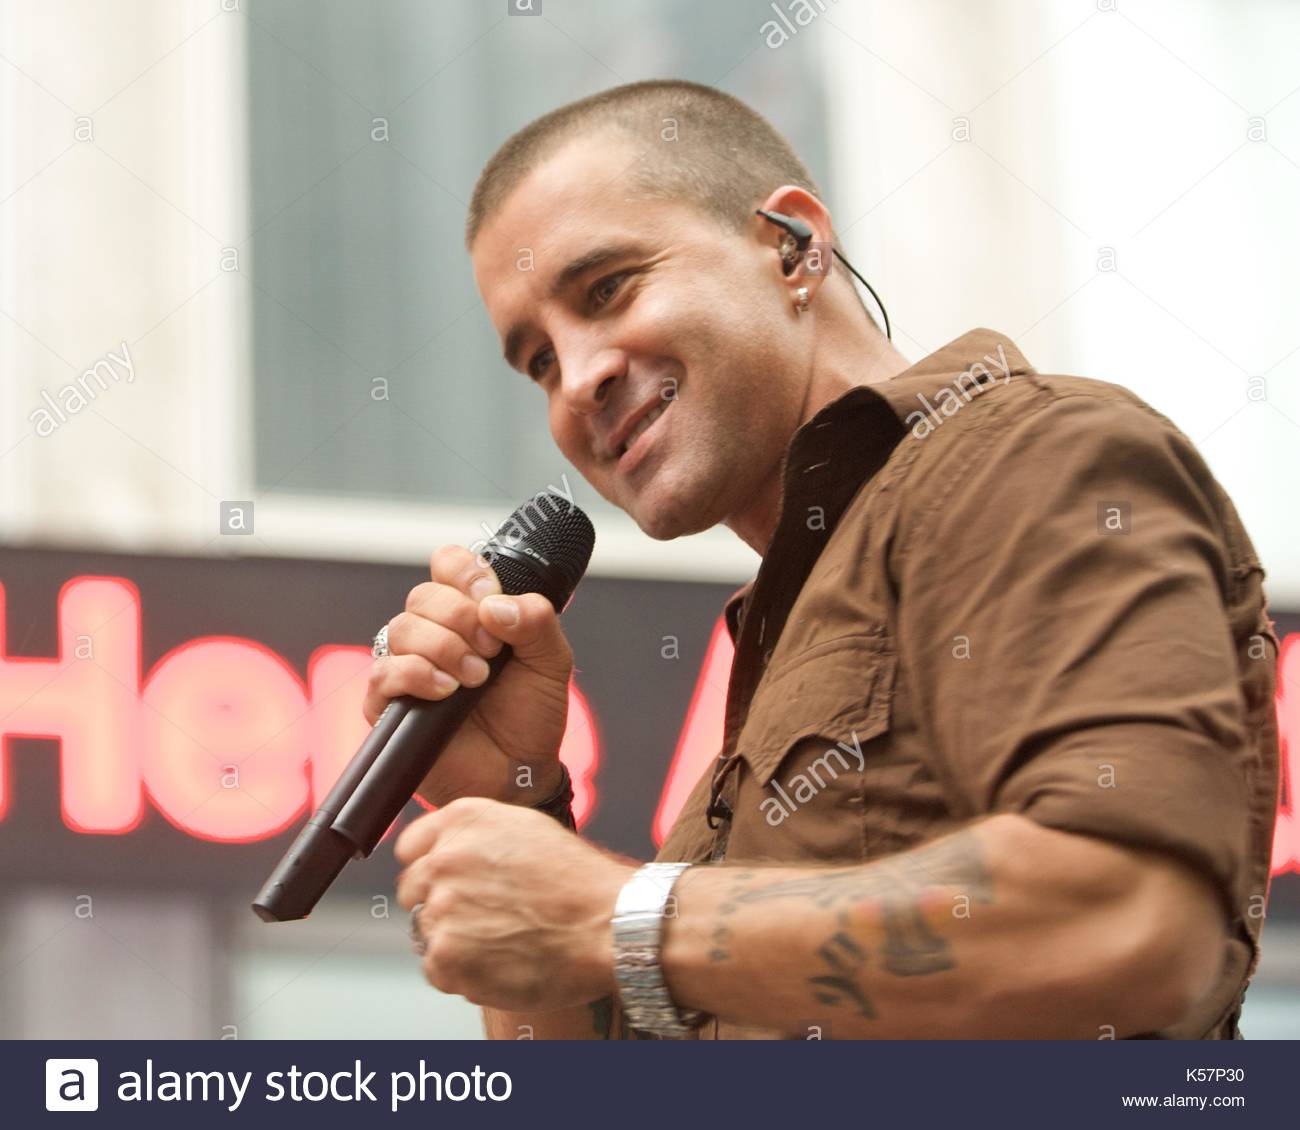 Scott stapp creed in concert on the fox friends show fox scott stapp creed in concert on the fox friends show fox news in new york city ny kristyandbryce Images